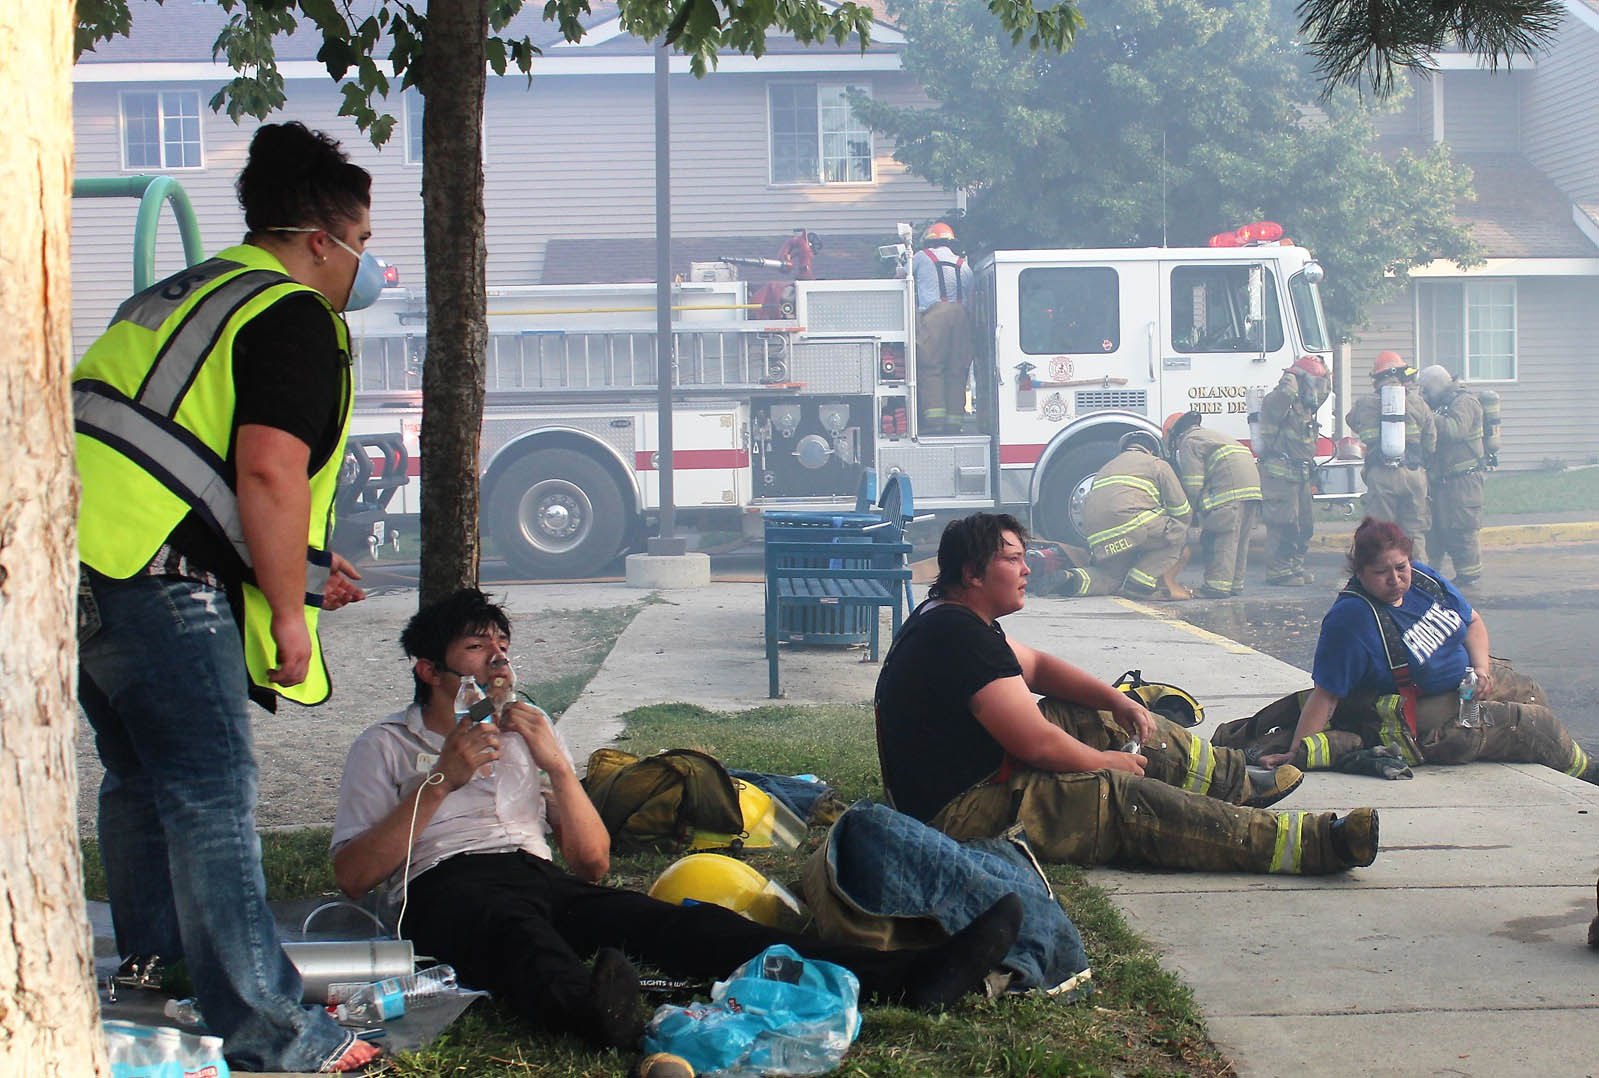 Exhausted firefighters take a break from the heat and smoke.